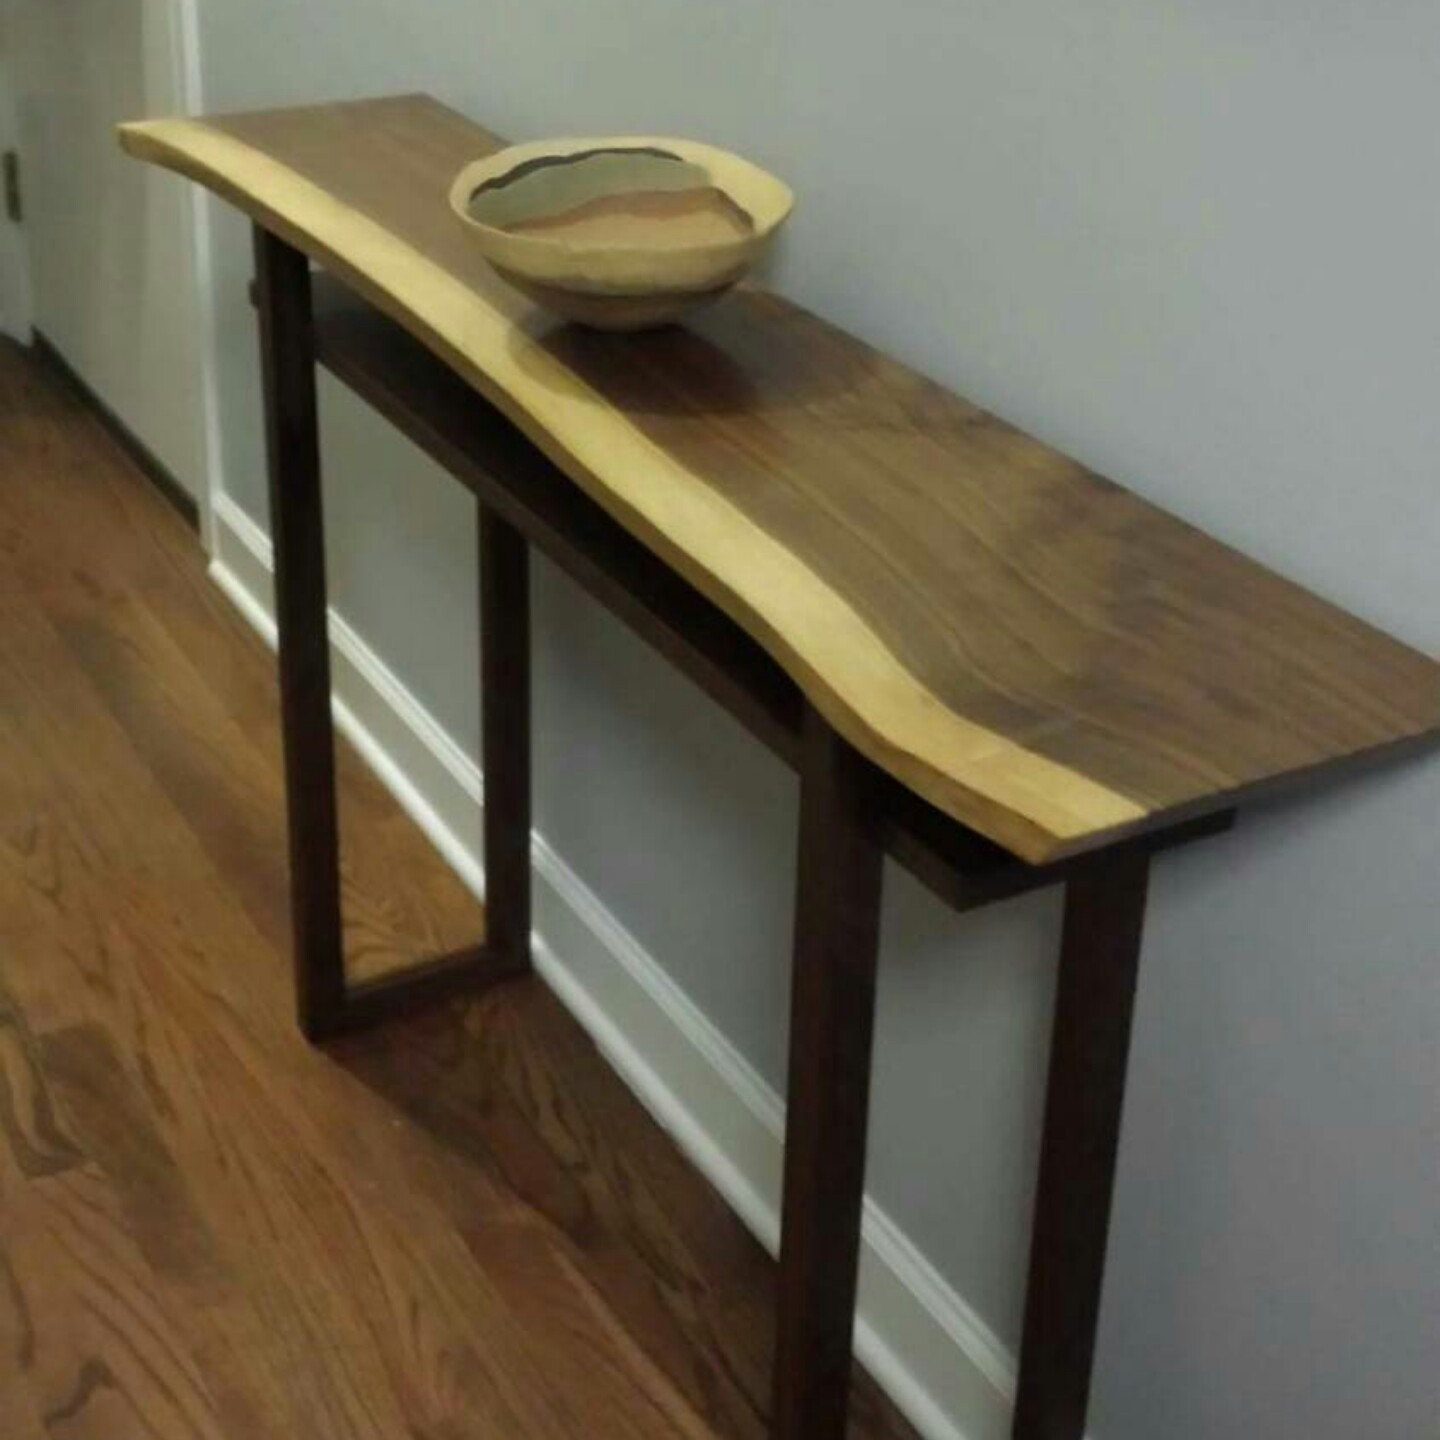 Live Edge Hall Table Wood Console Narrow Entryway Furniture Etsy In 2020 Live Edge Console Table Live Edge Table Furniture